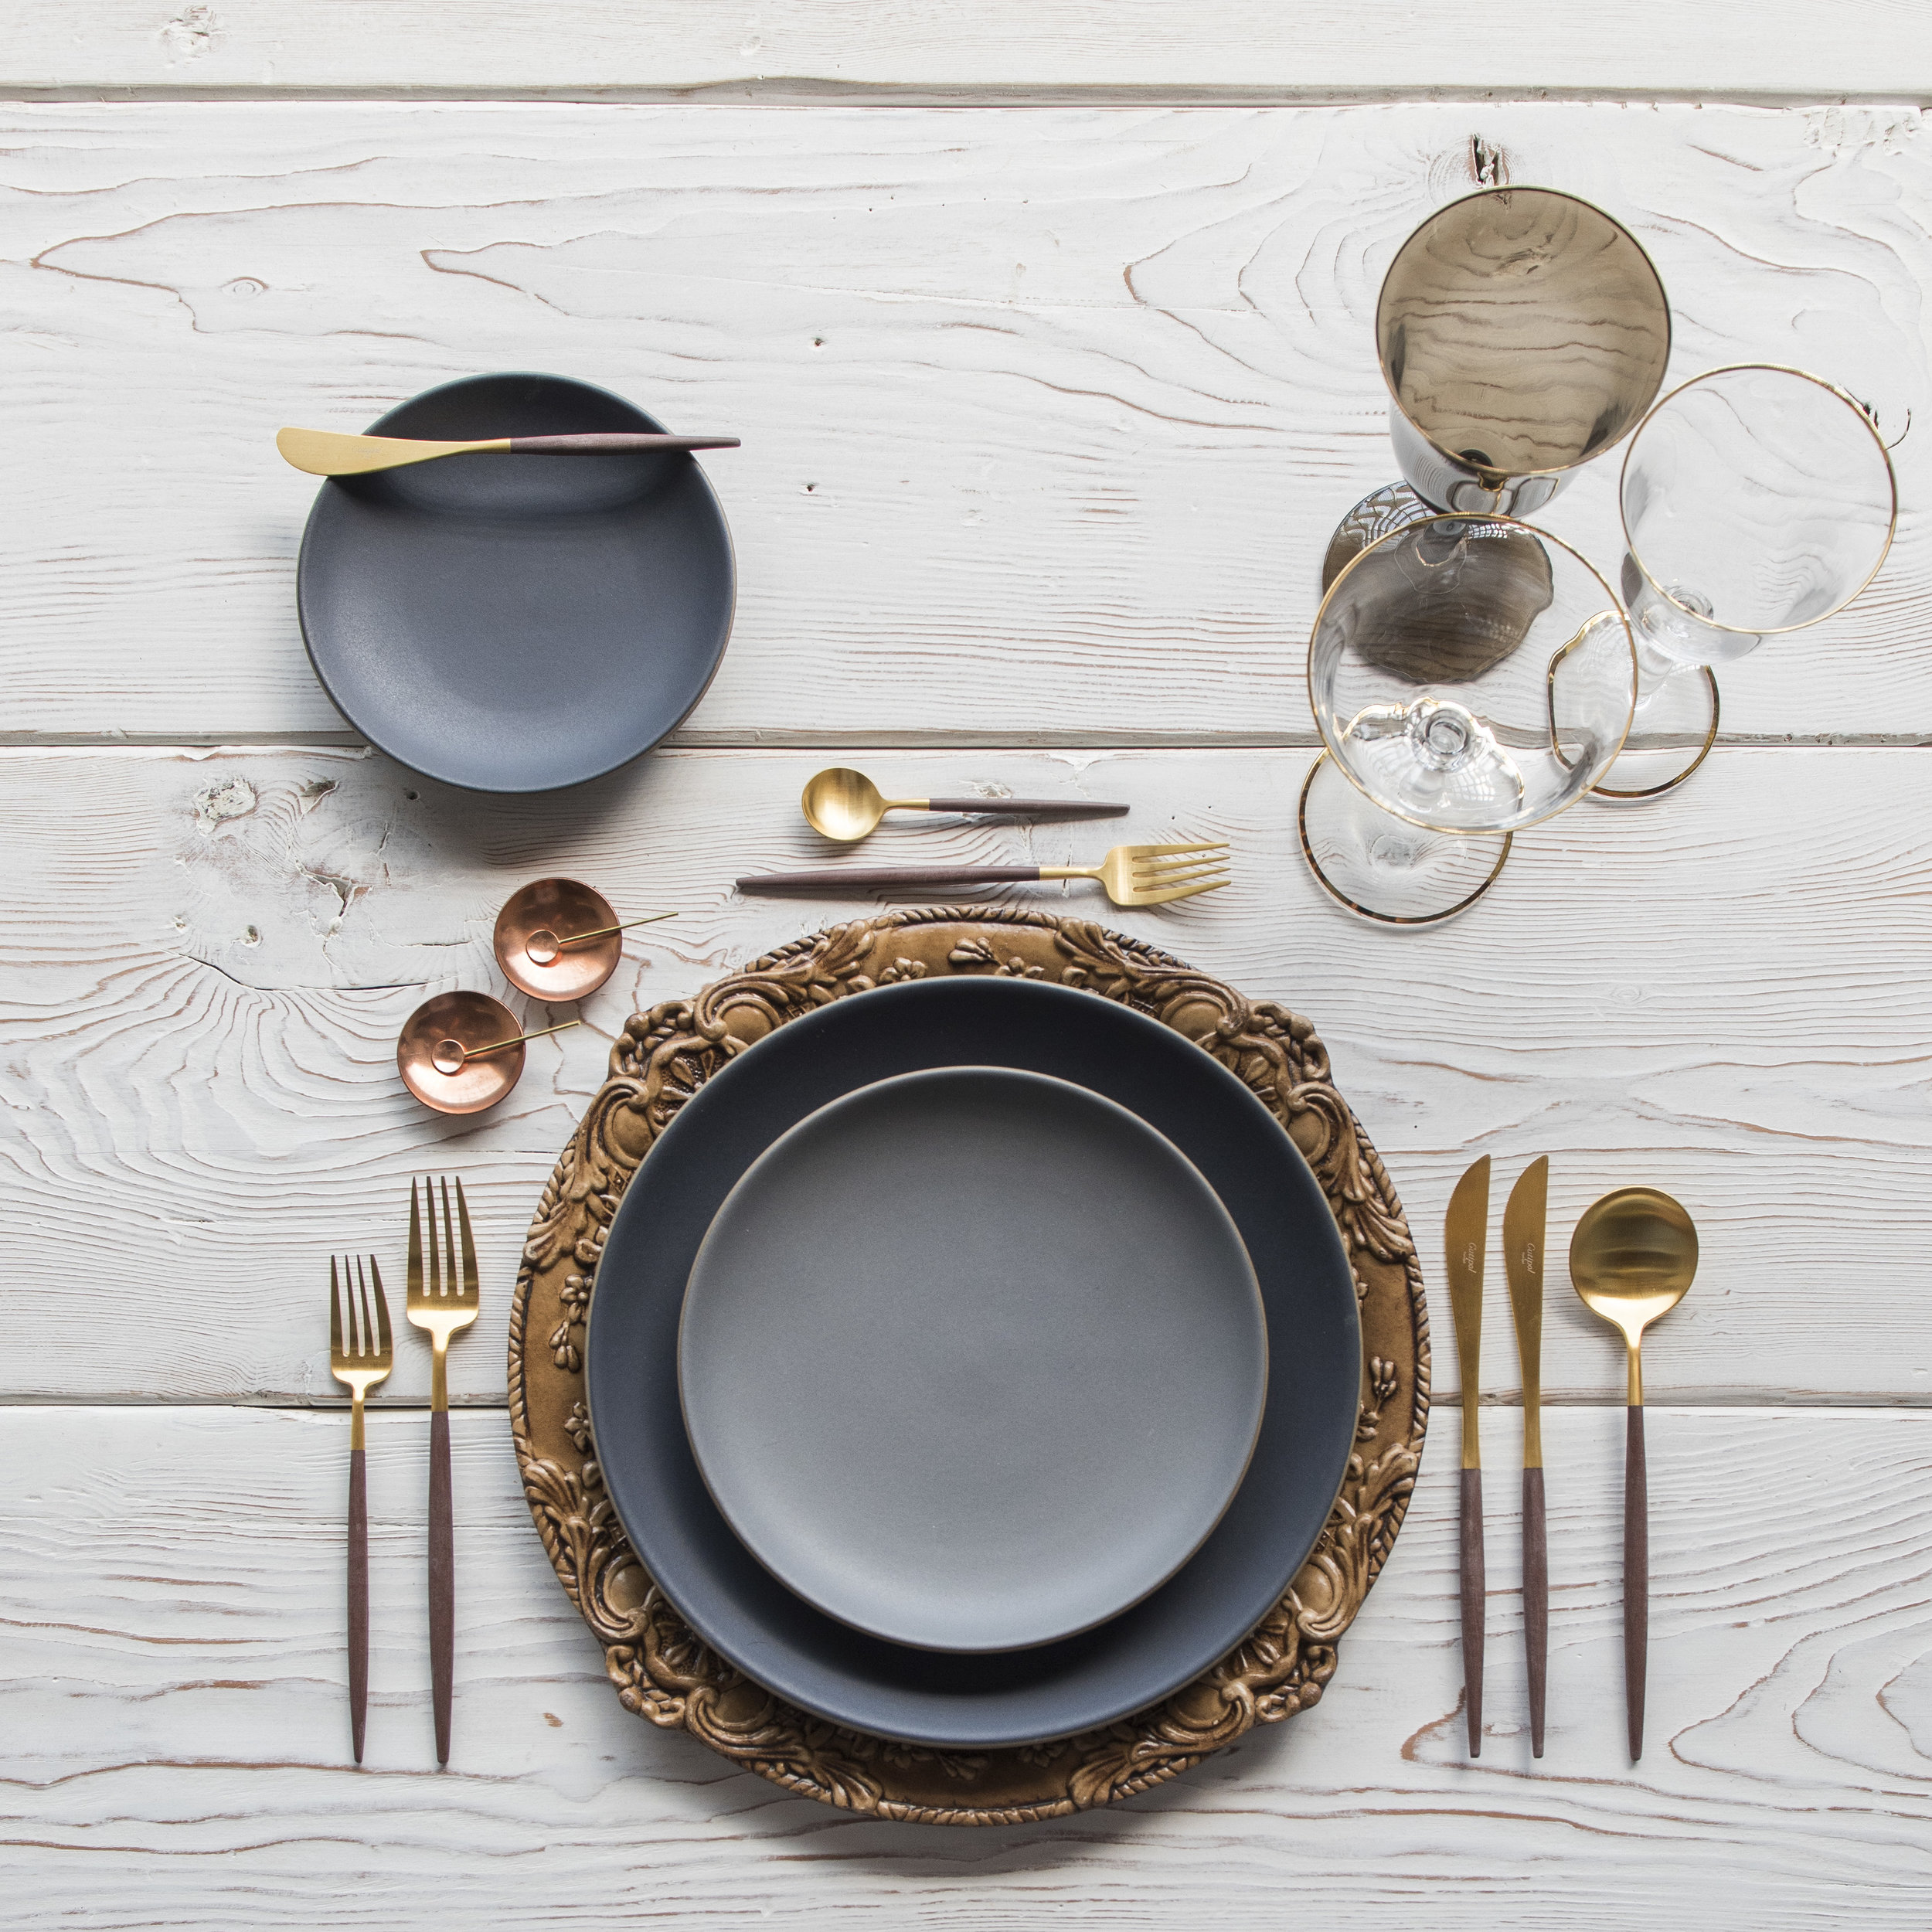 RENT: Verona Chargers in Walnut + Heath Ceramics in Indigo/Slate + Goa Flatware in Brushed 24k Gold/Wood + Chloe 24k Gold Rimmed Stemware + Chloe 24k Gold Rimmed Goblet in Smoke + Copper Salt Cellars + Tiny Copper Spoons   SHOP: Verona Chargers in Walnut + Goa Flatware in Brushed 24k Gold/Wood + Chloe 24k Gold Rimmed Stemware + Copper Salt Cellars + Tiny Copper Spoons